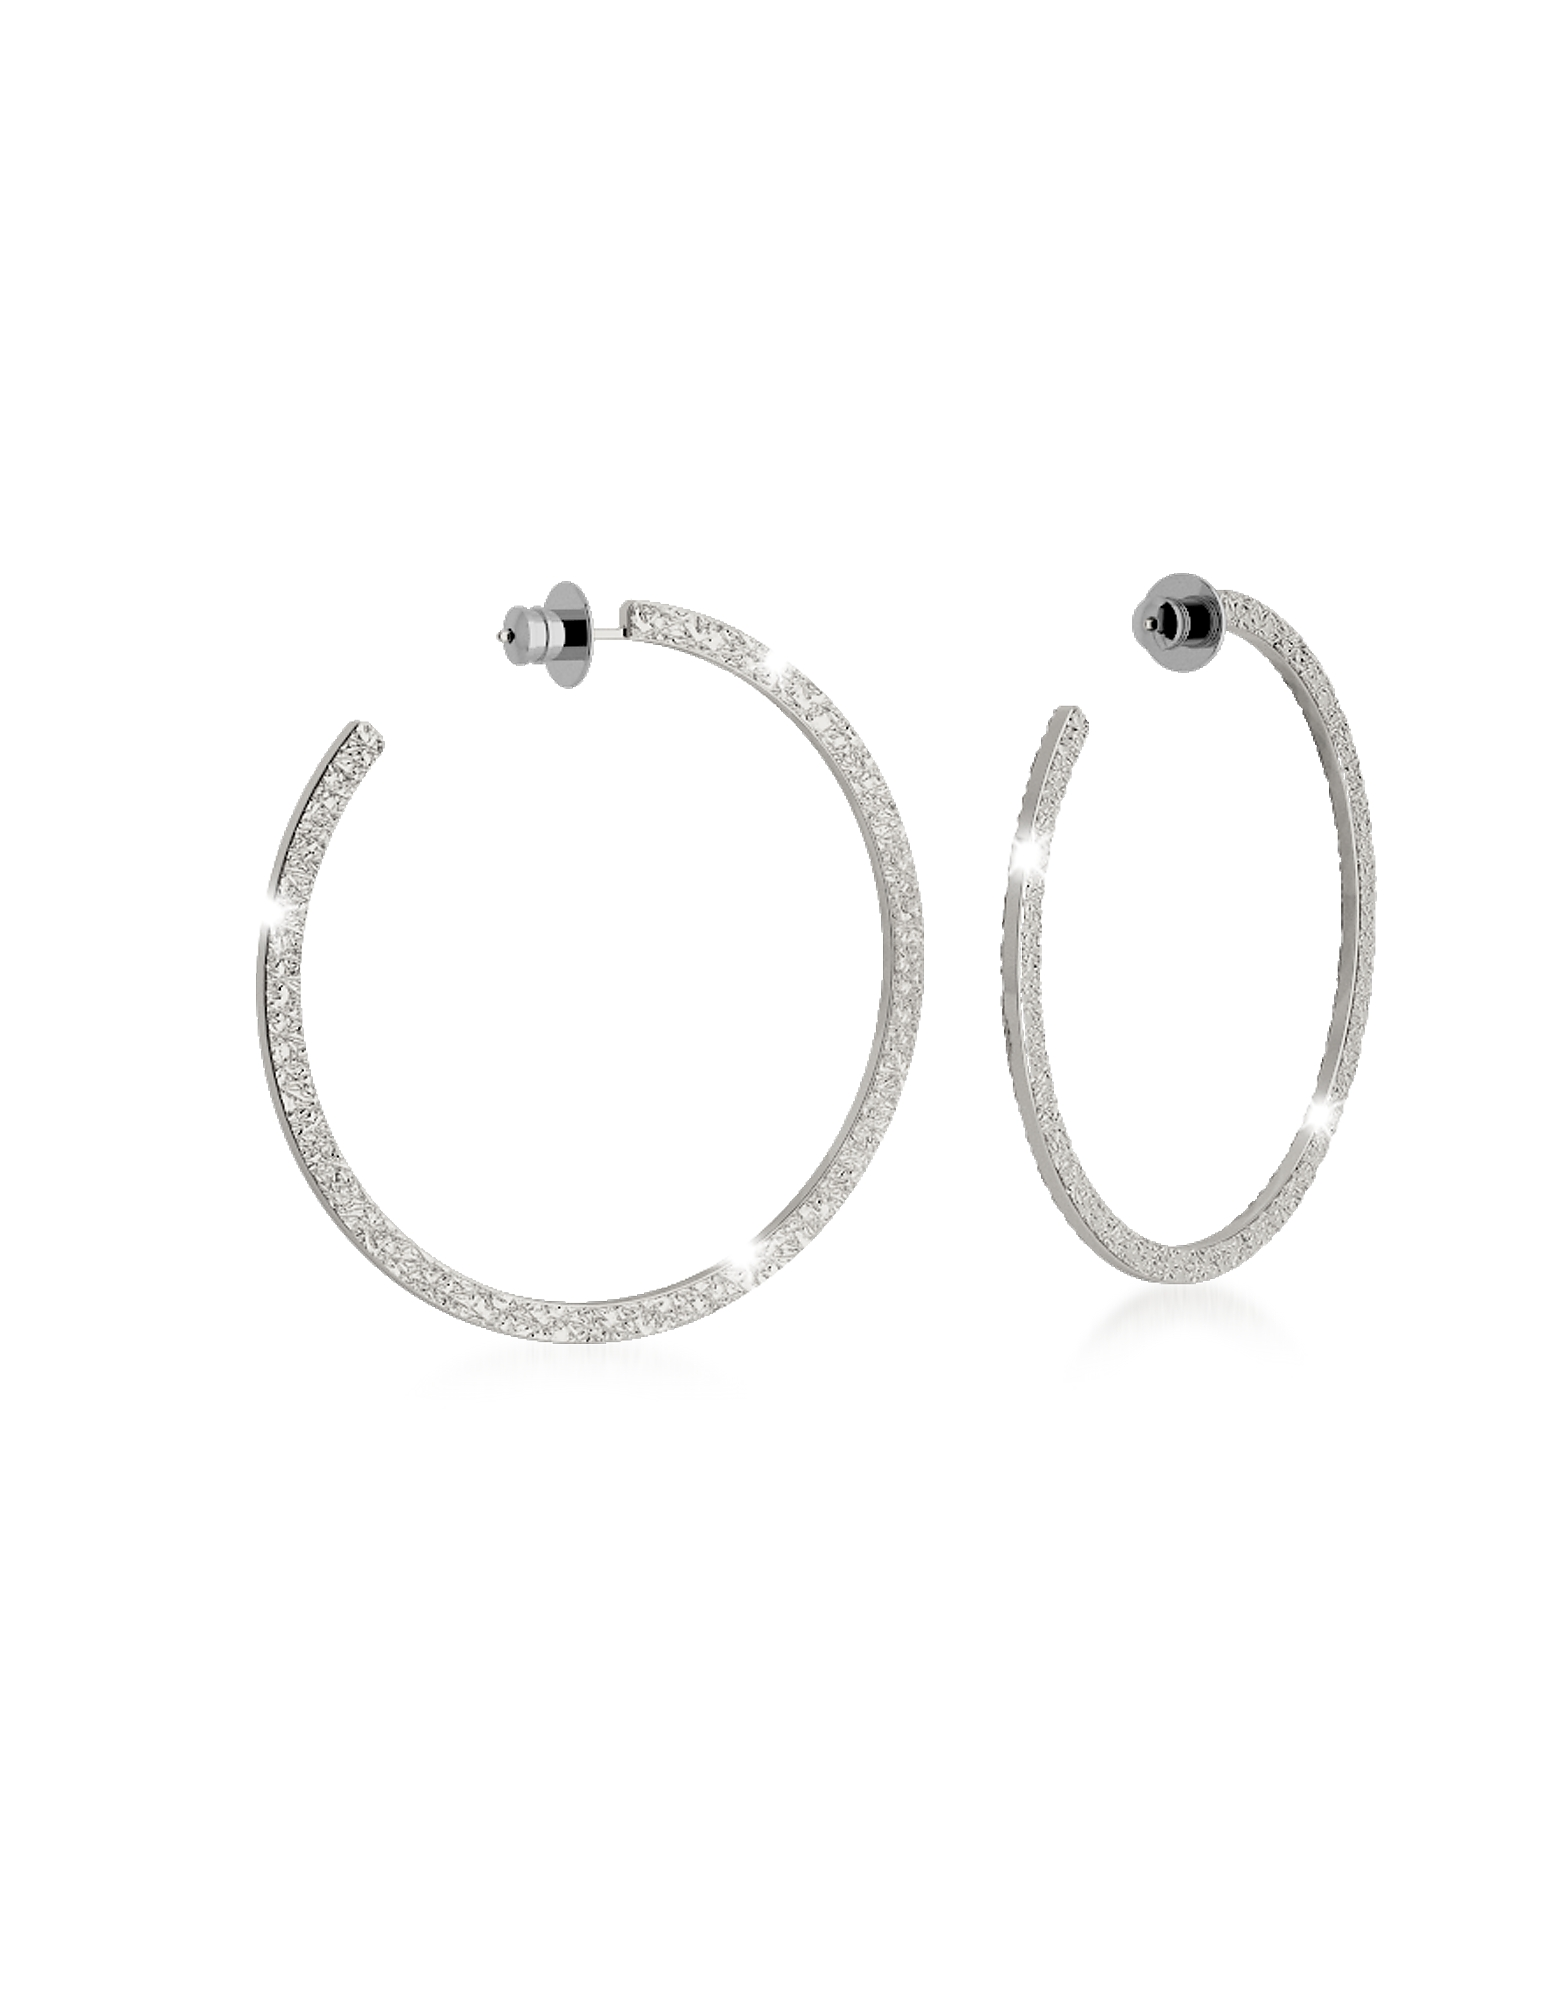 Rebecca Earrings, R-ZERO Rhodium Over Bronze Hoop Earrings